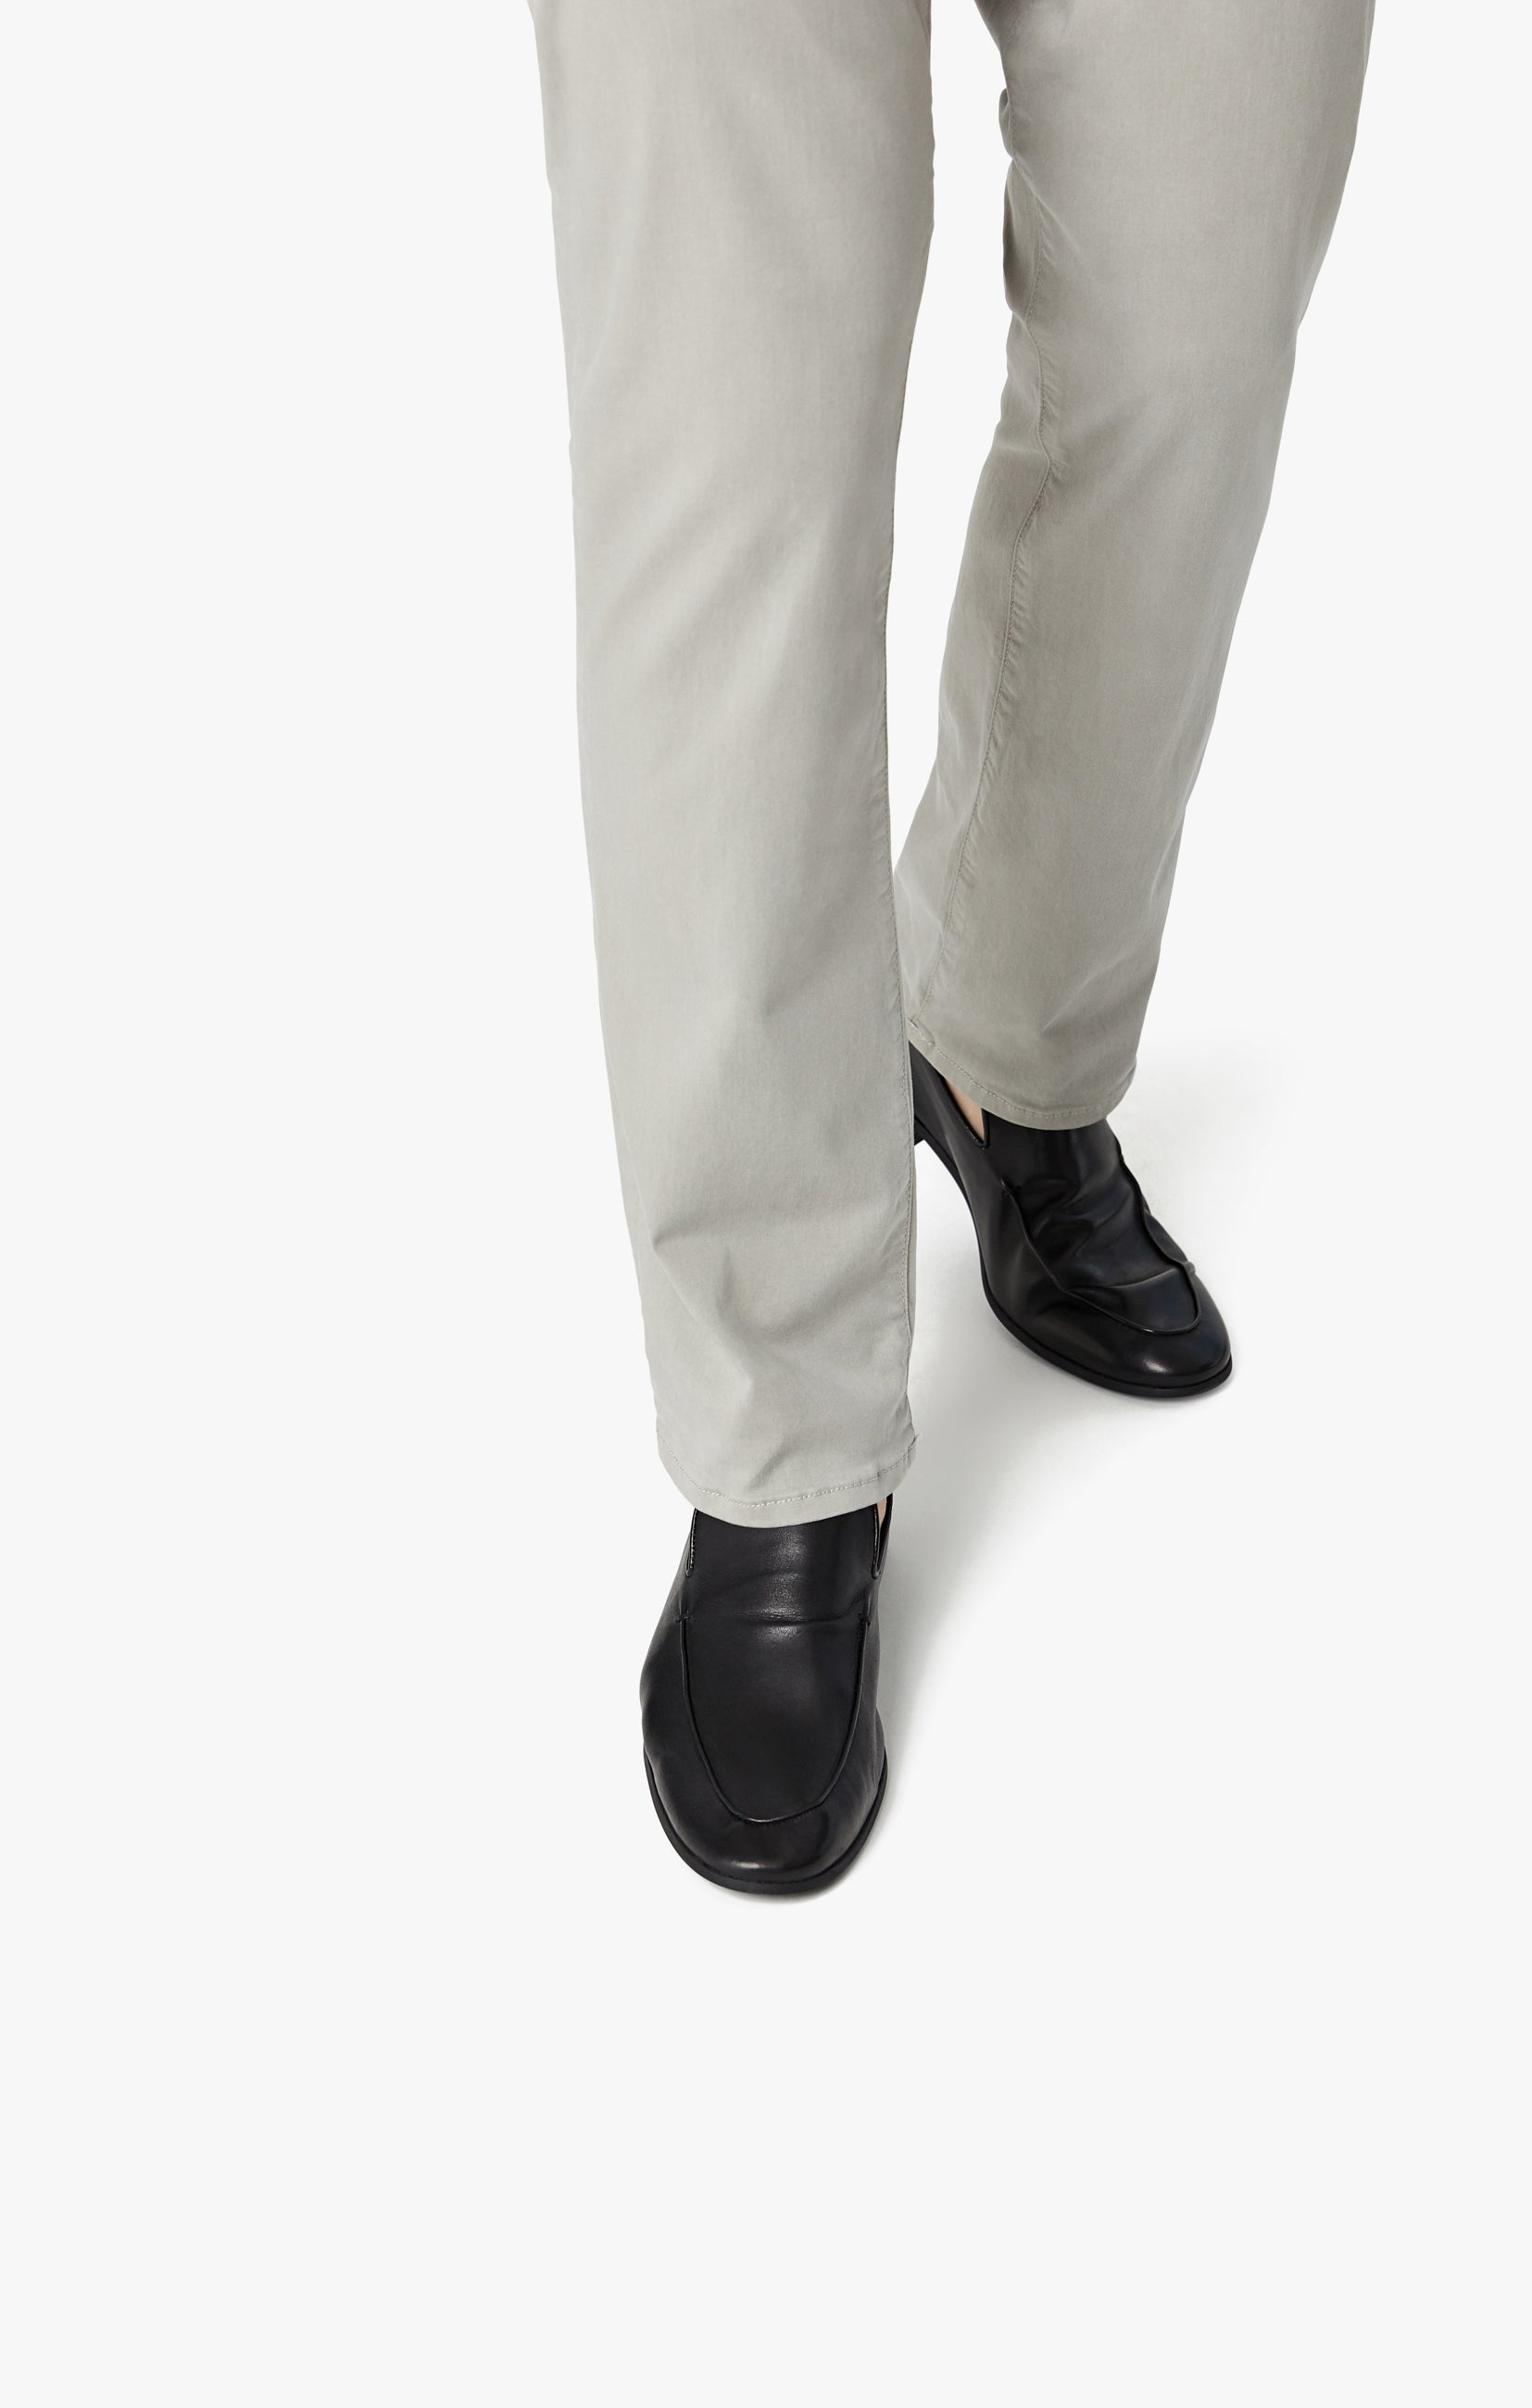 Courage Straight Leg Pants in Grey Twill Image 7